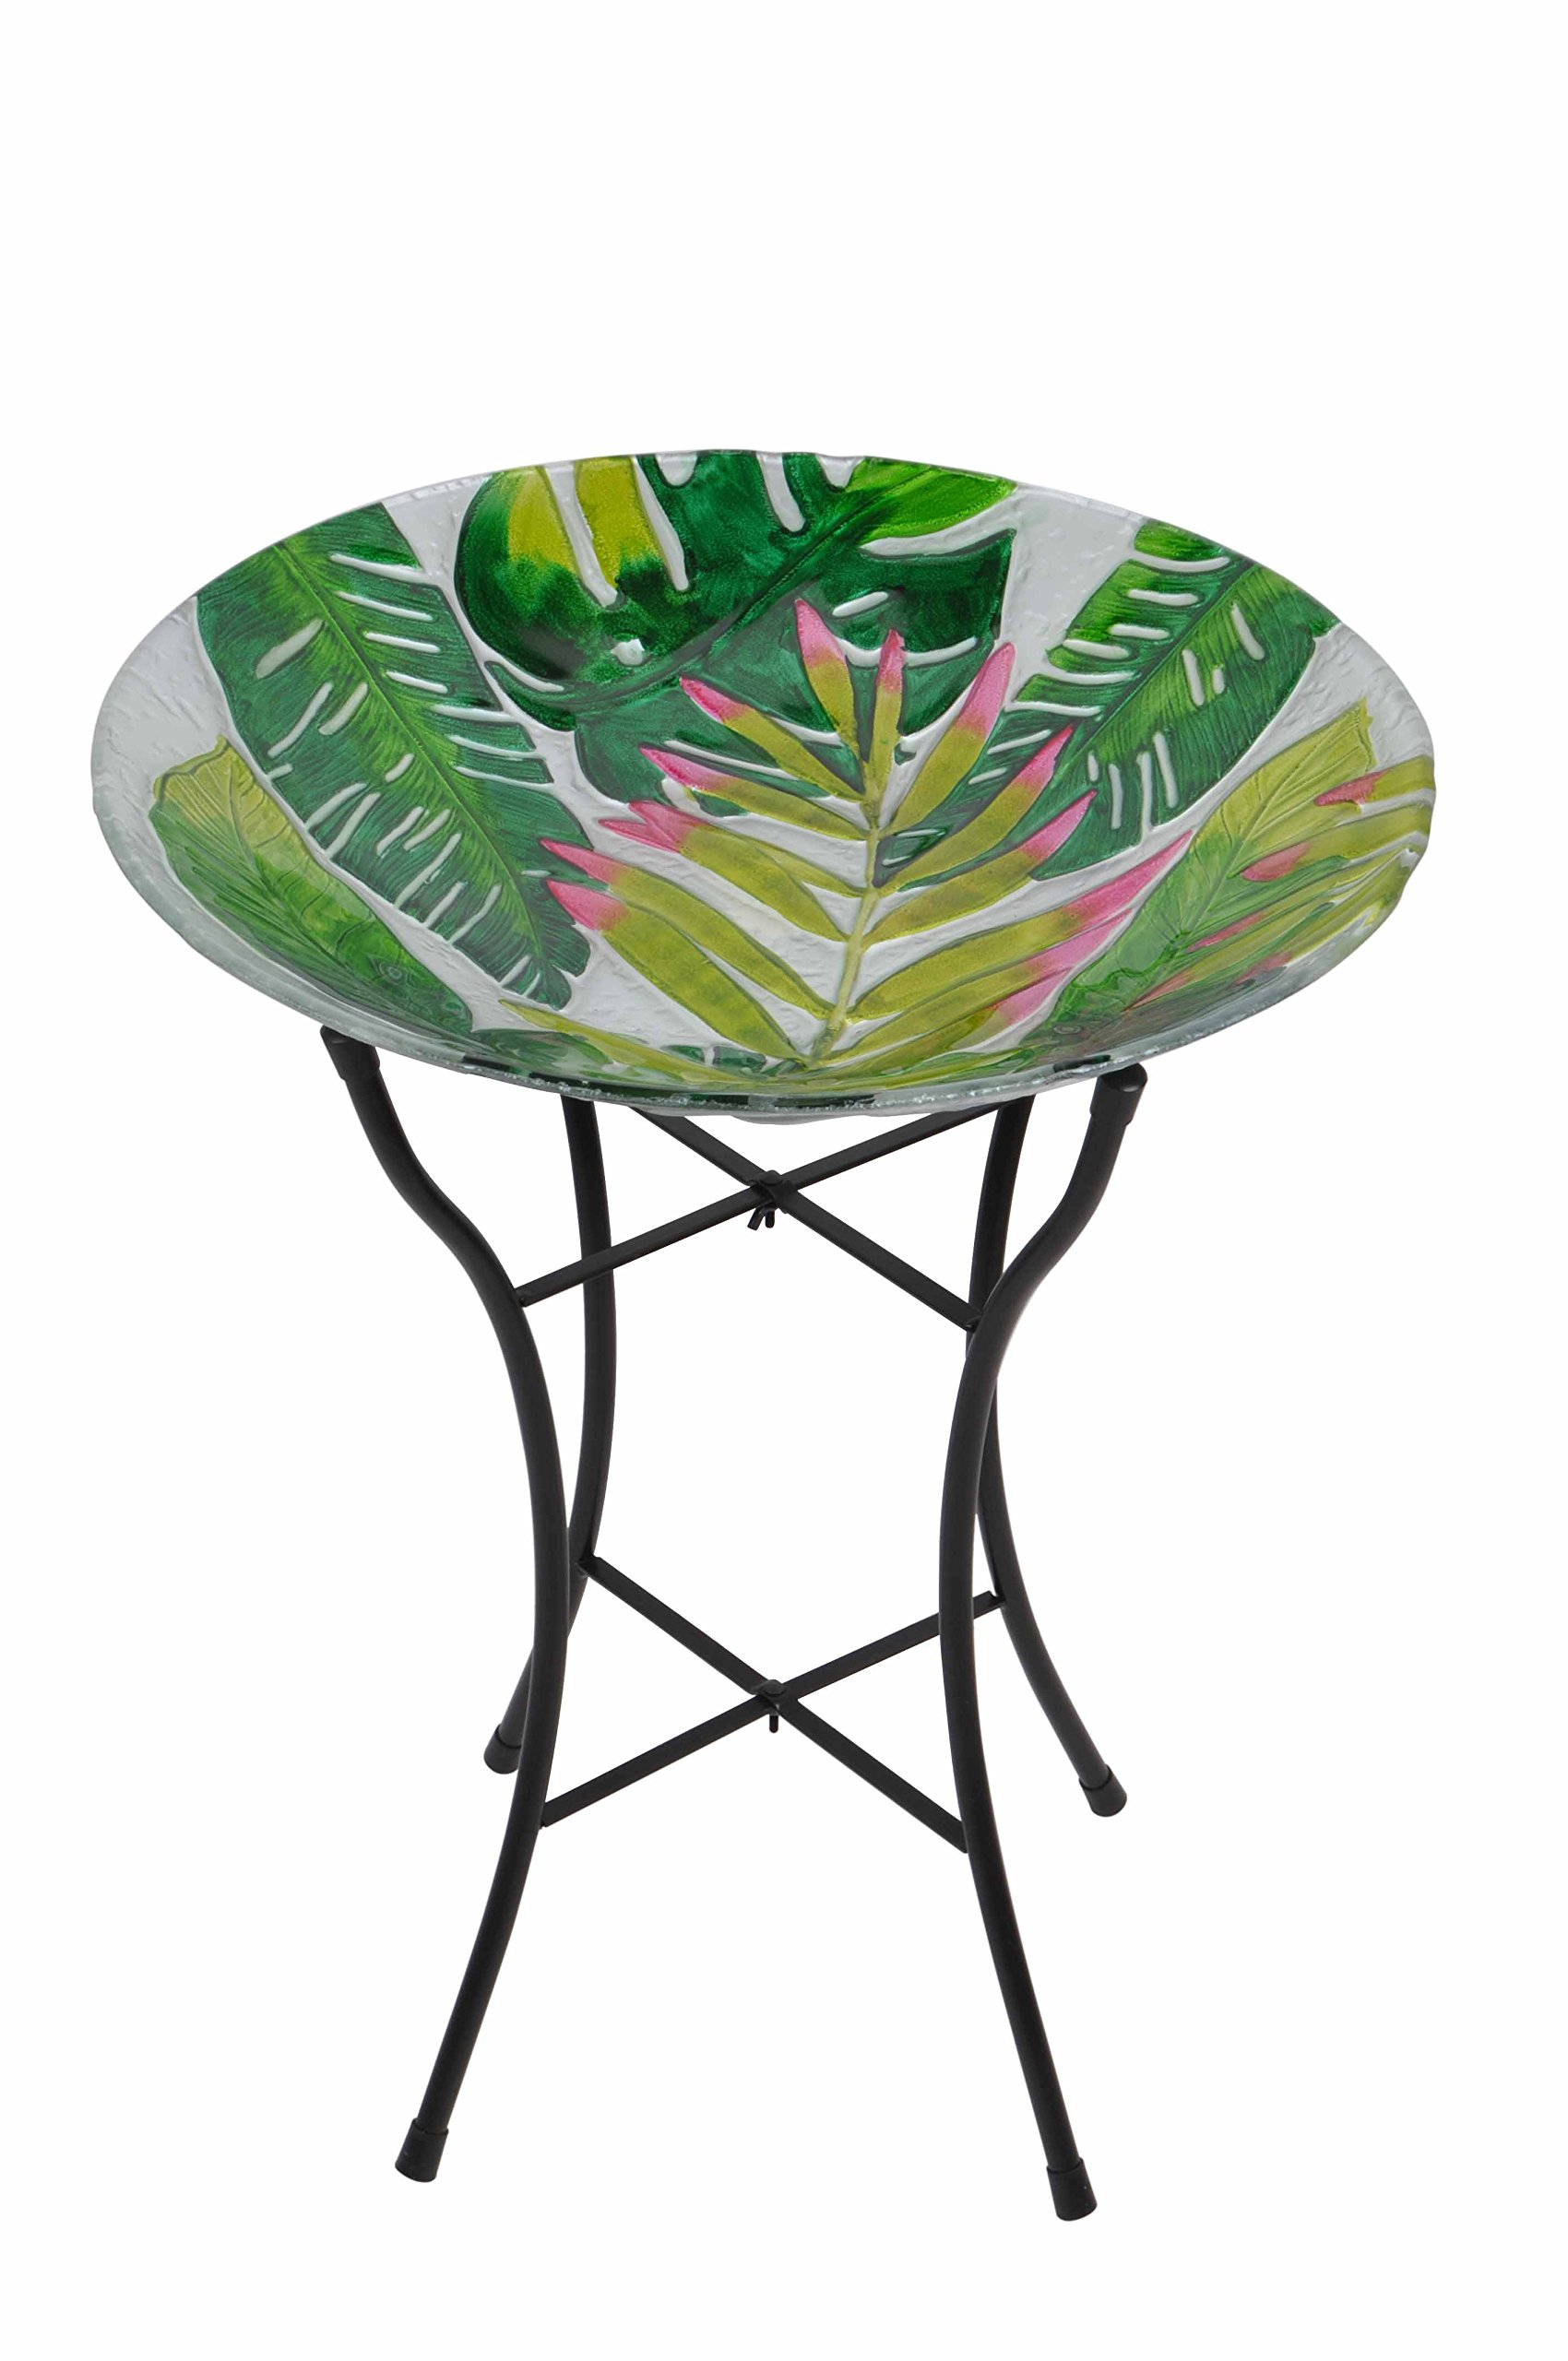 Peaktop Outdoor 18'' Tropical Glass Birdbath w/Metal Stand - Green by Peaktop